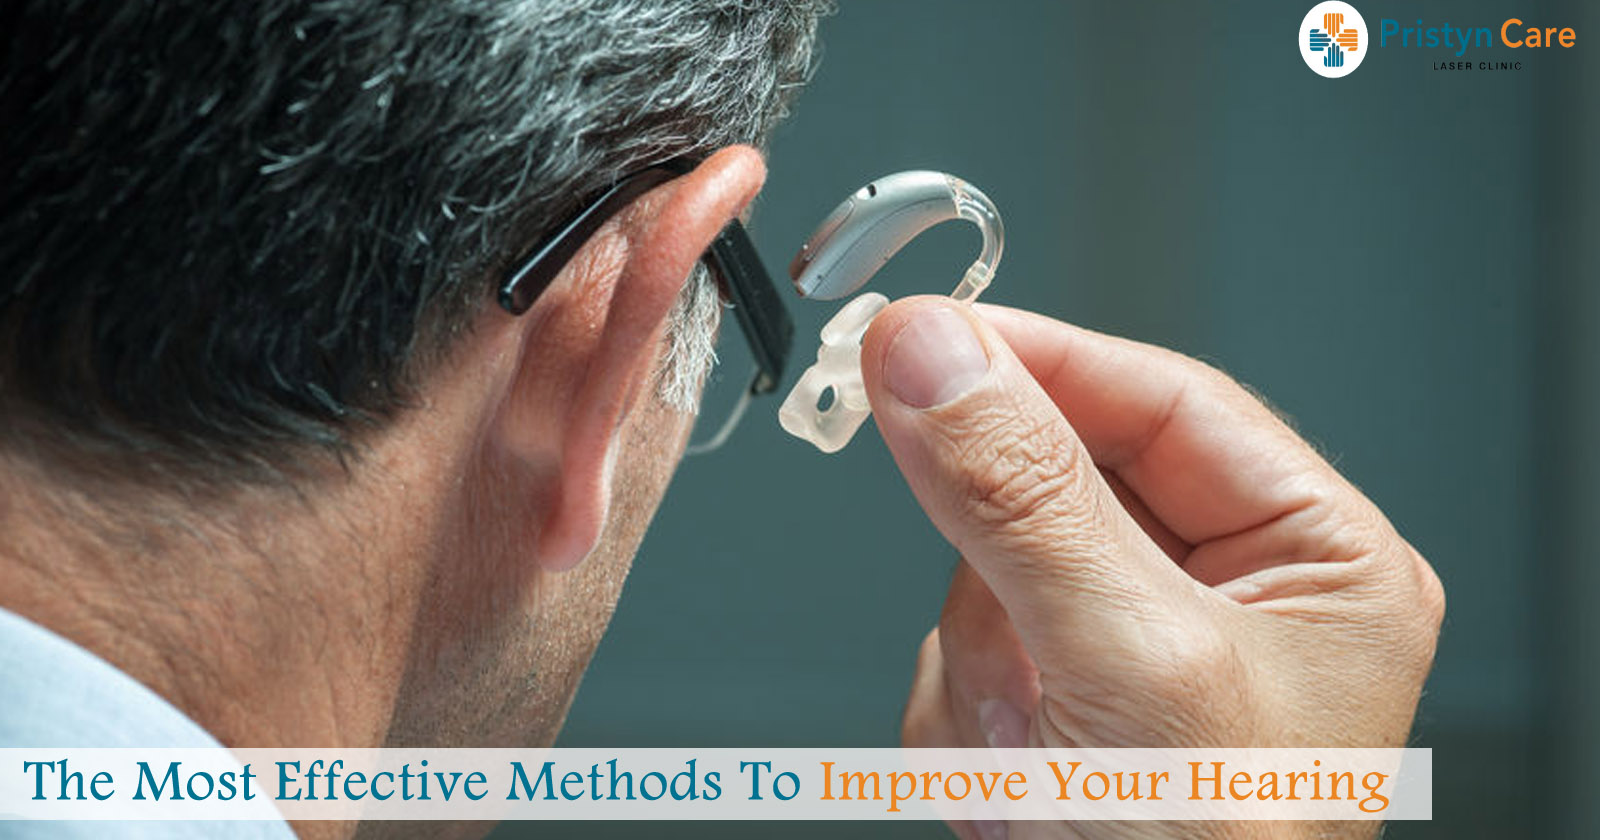 The most effective method to improve your hearing